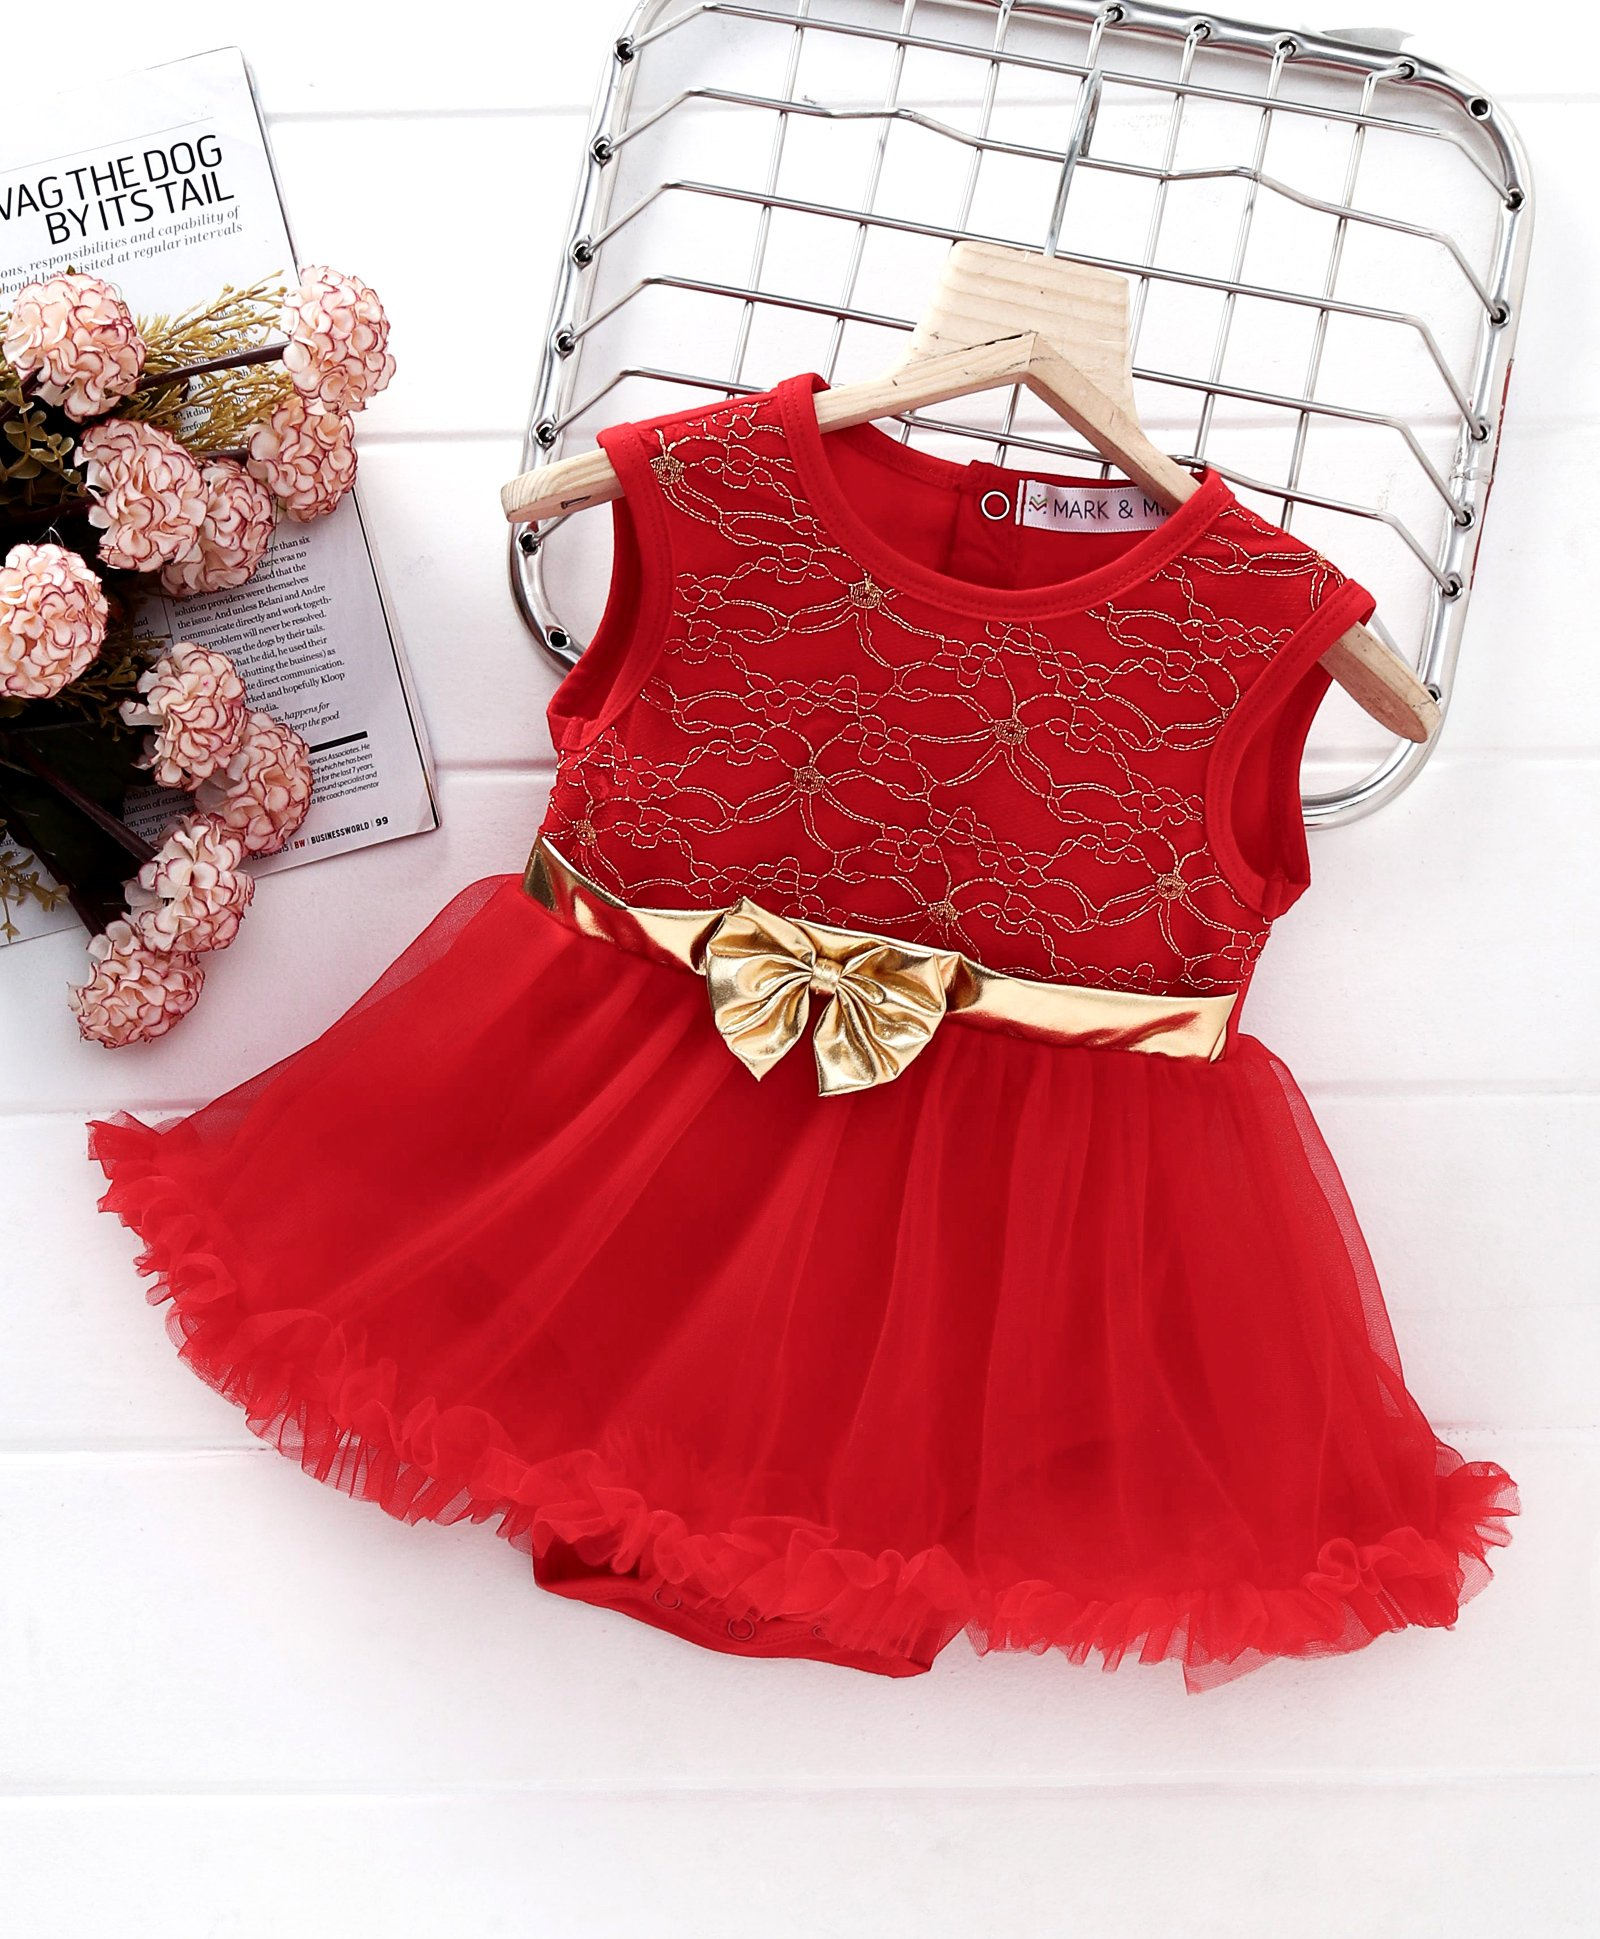 3cb4e6959ccc9 Buy Mark & Mia Embroidery Work Sleeveless Net Onesie Dress Red for Girls  (6-9 Months) Online in India, Shop at FirstCry.com - 2477814